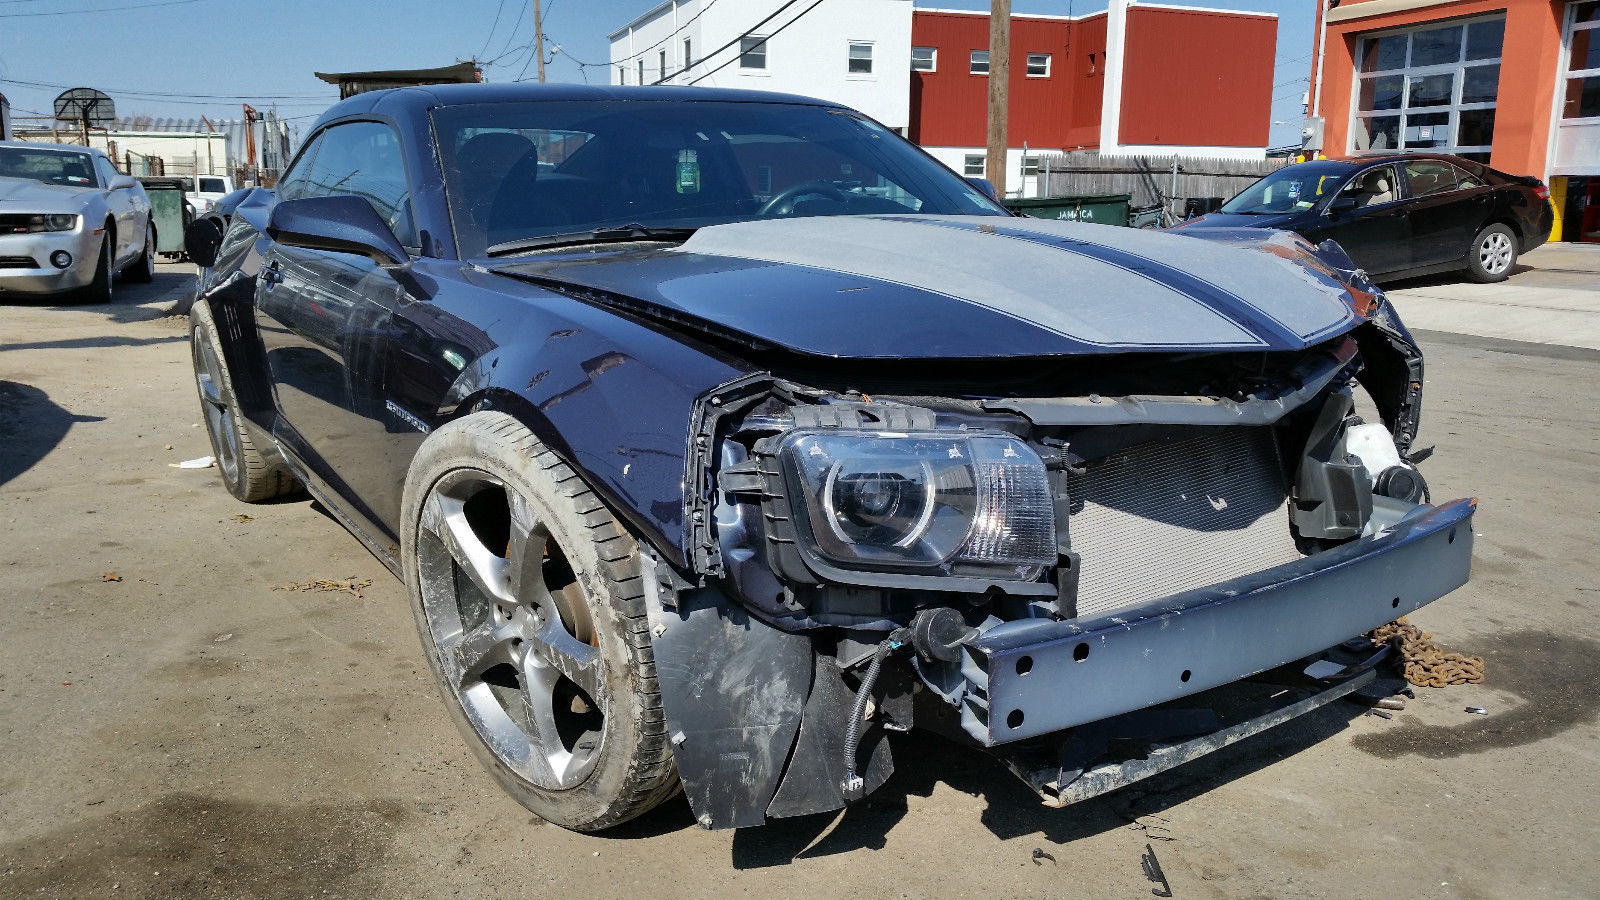 2013 Chevrolet Camaro RS Coupe 3.6L Salvage Wrecked for sale